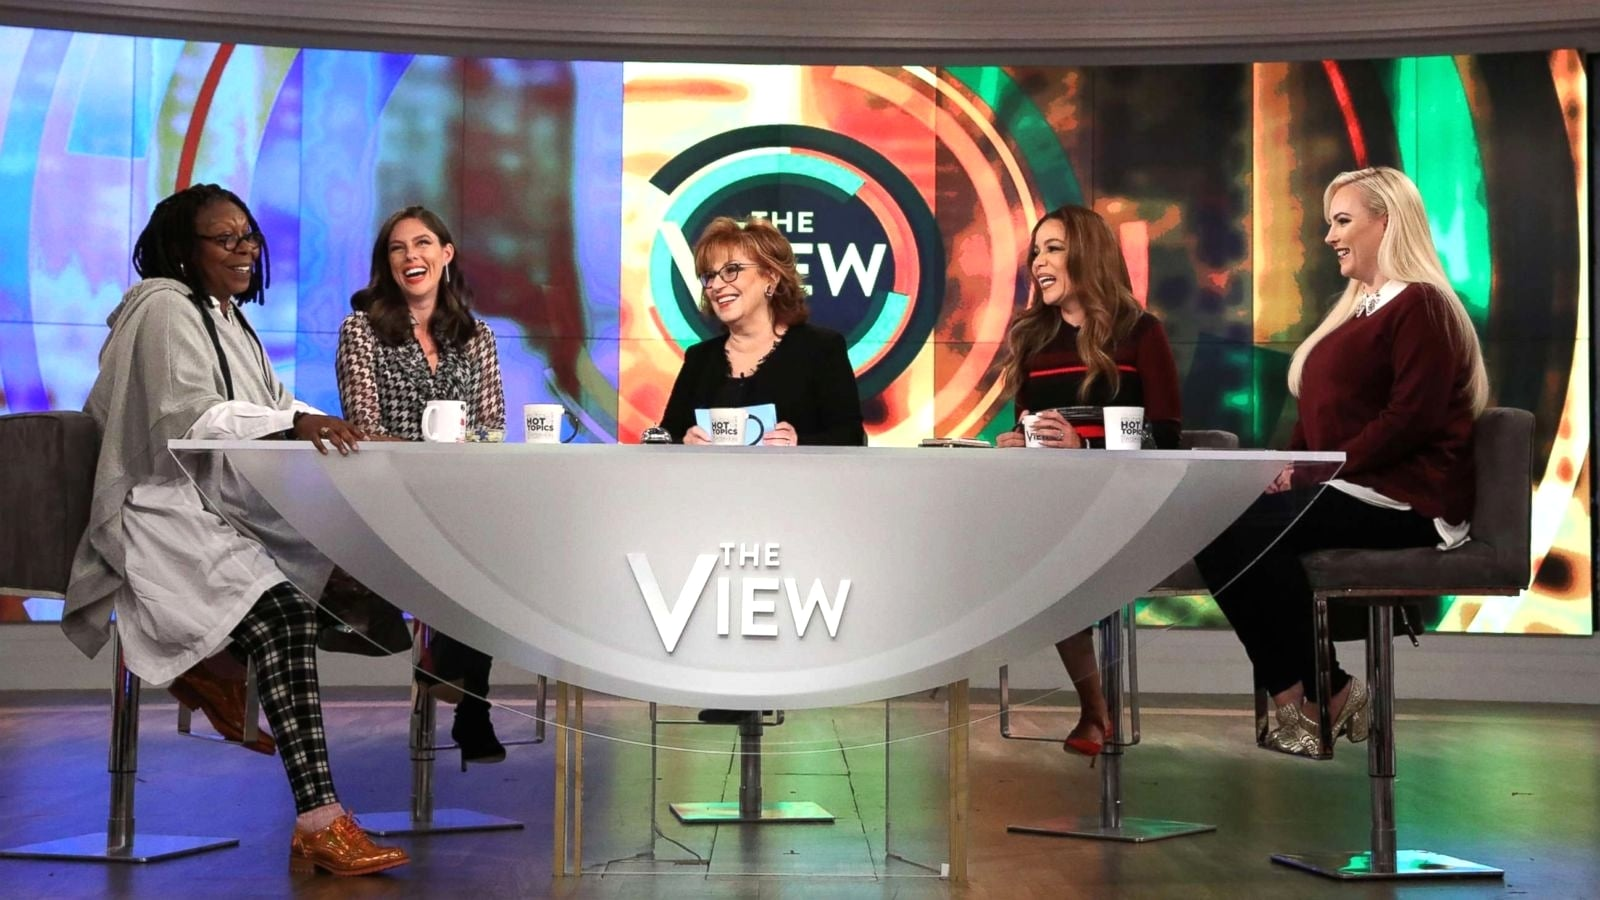 The View - Season 3 Episode 176 : Season 3, Episode 176